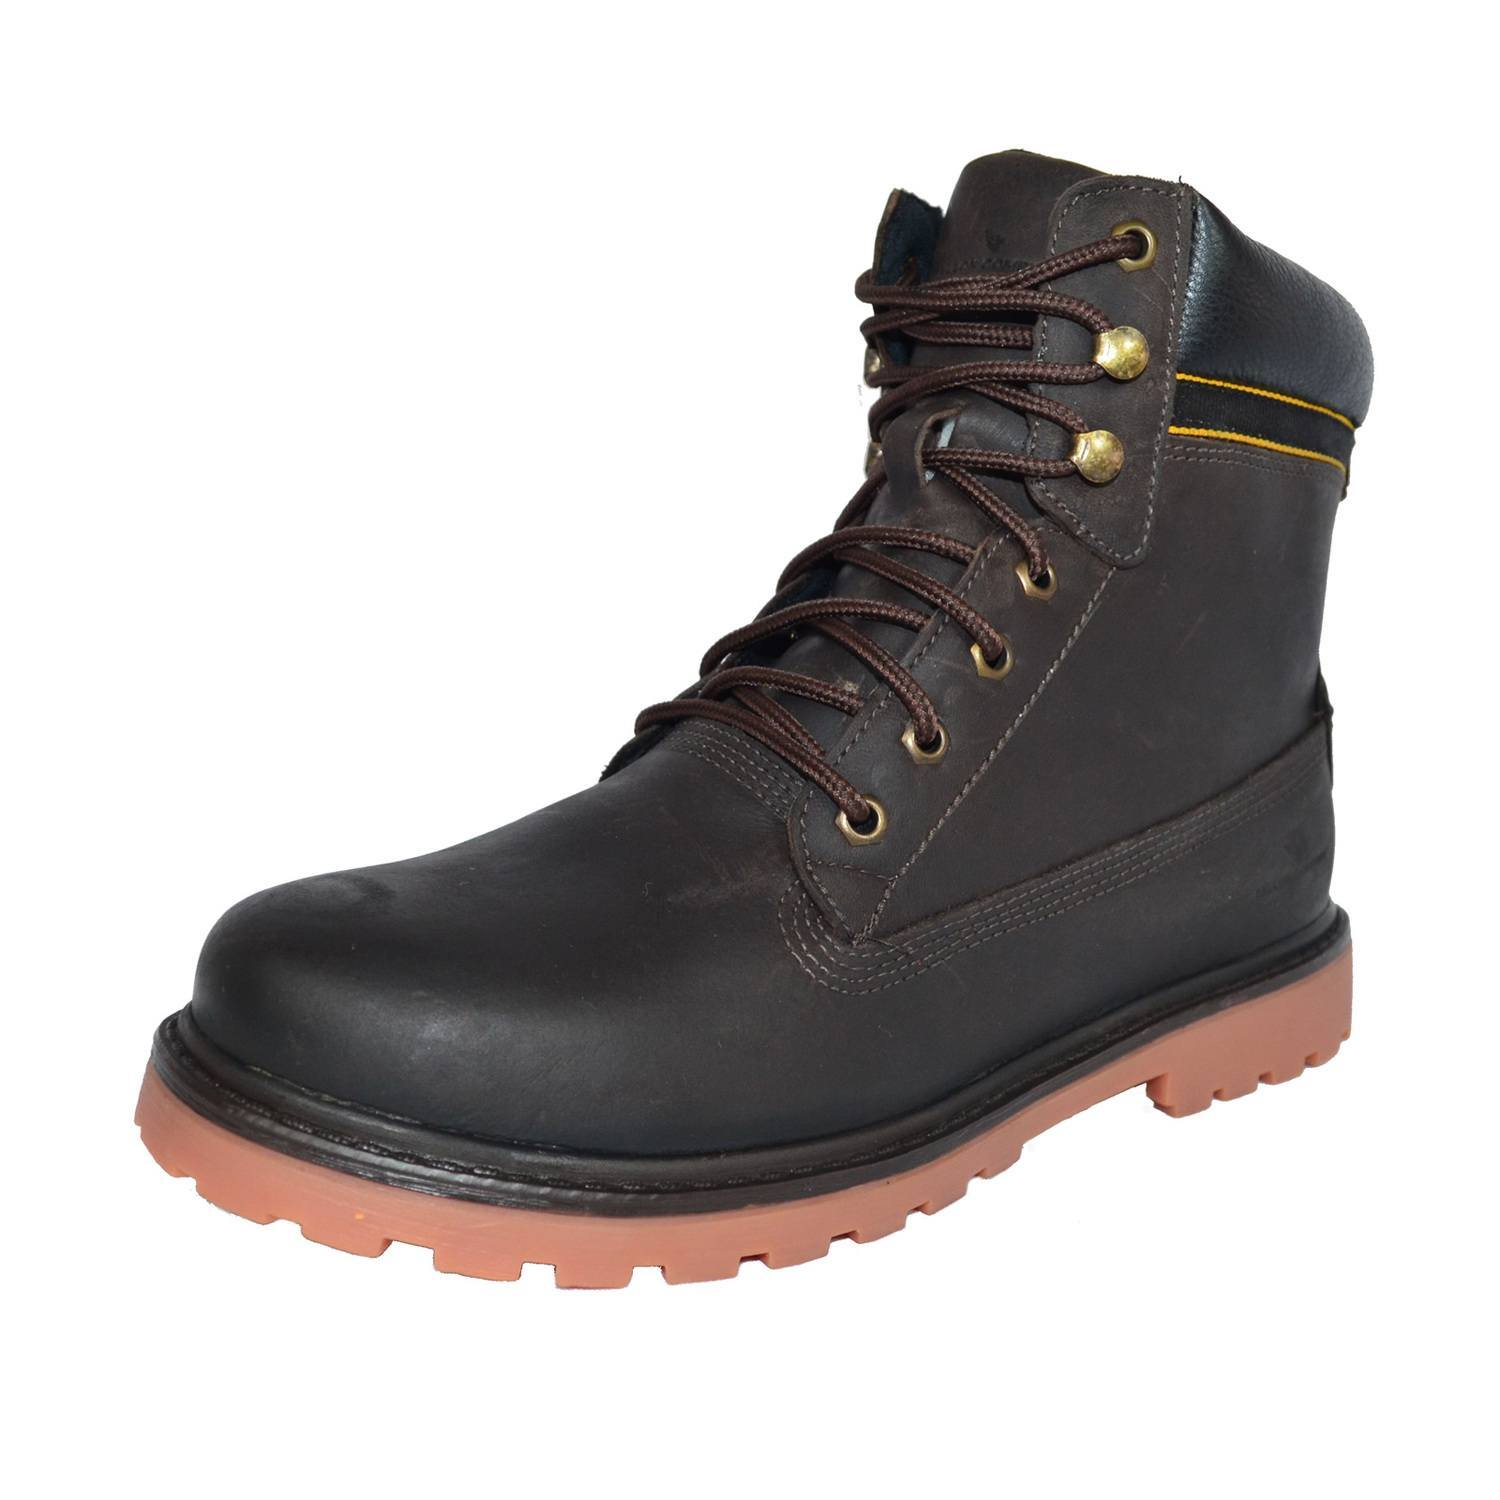 Bota Coturno Fallon Iron Head